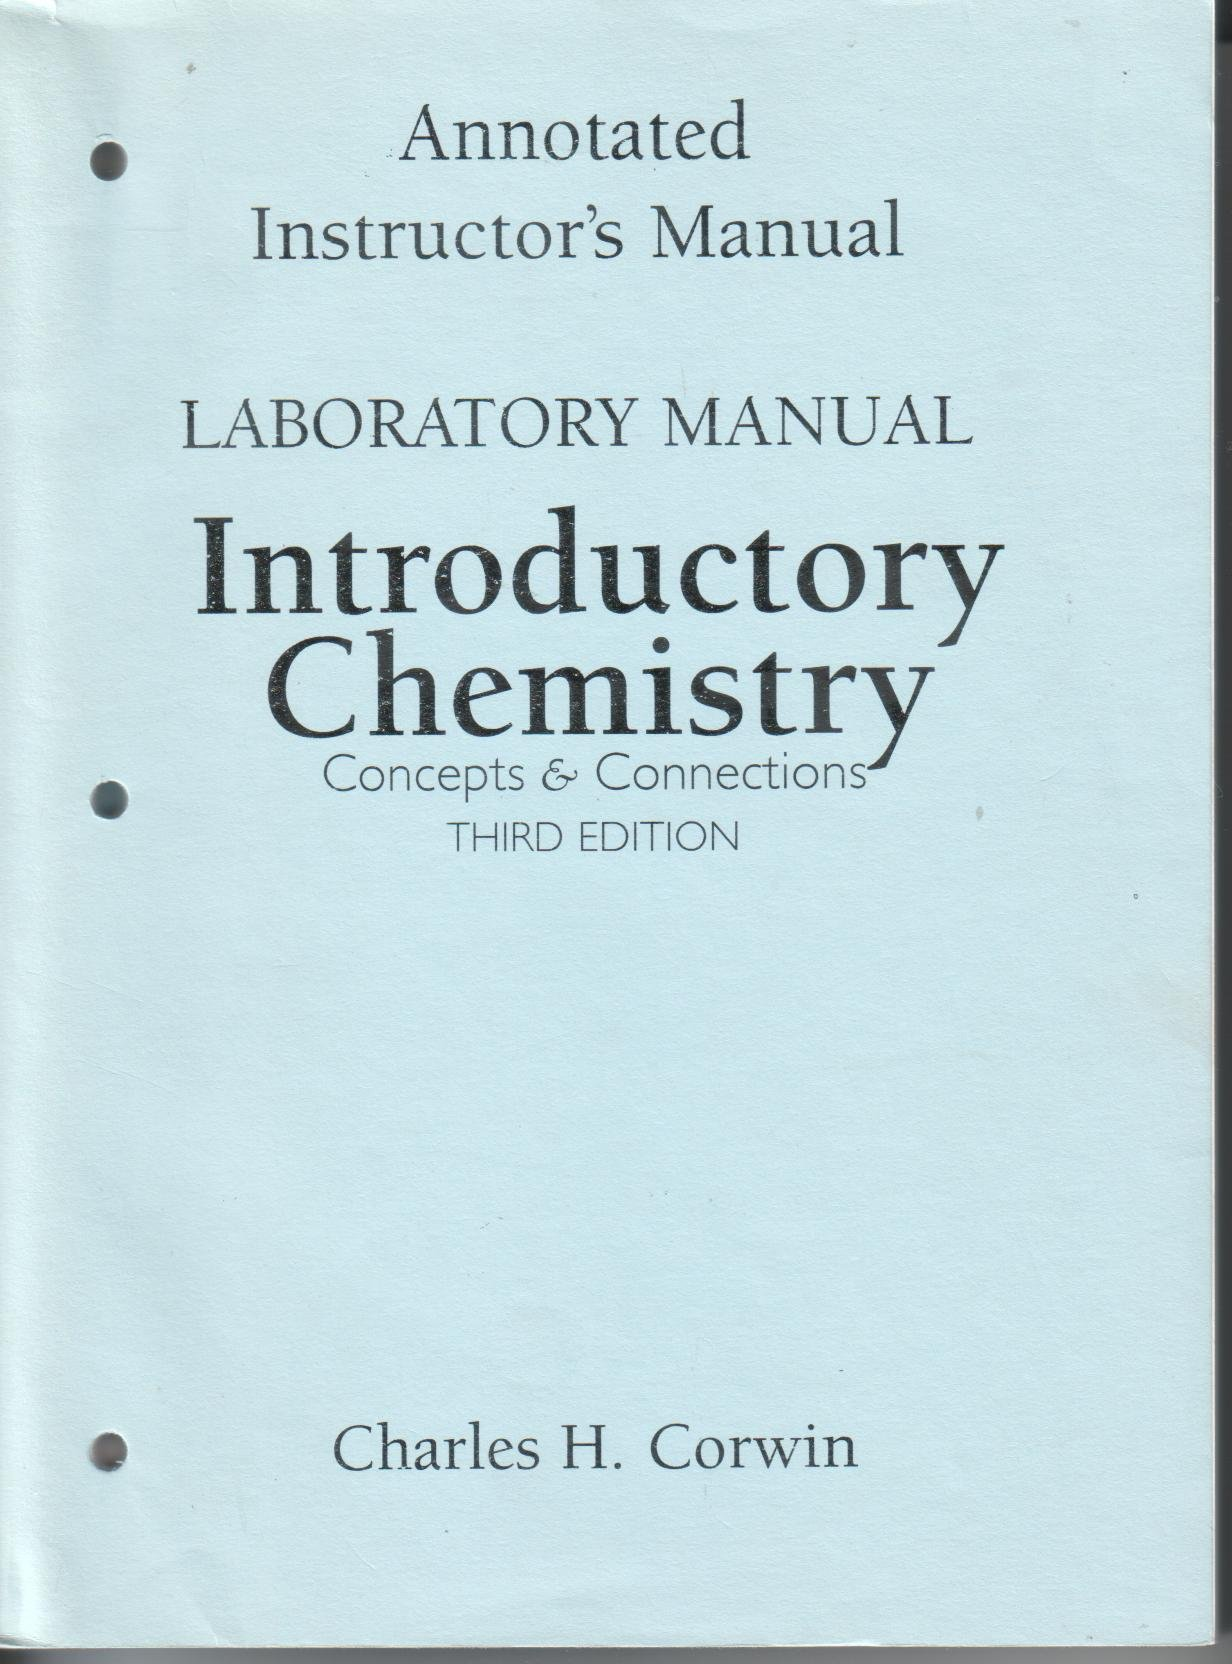 Annotated Instructor's Manual Laboratory Manual Introductory Chemistry  Concepts and Connections 3rd Edition: Charles H. Corwin: 9780130968838:  Amazon.com: ...